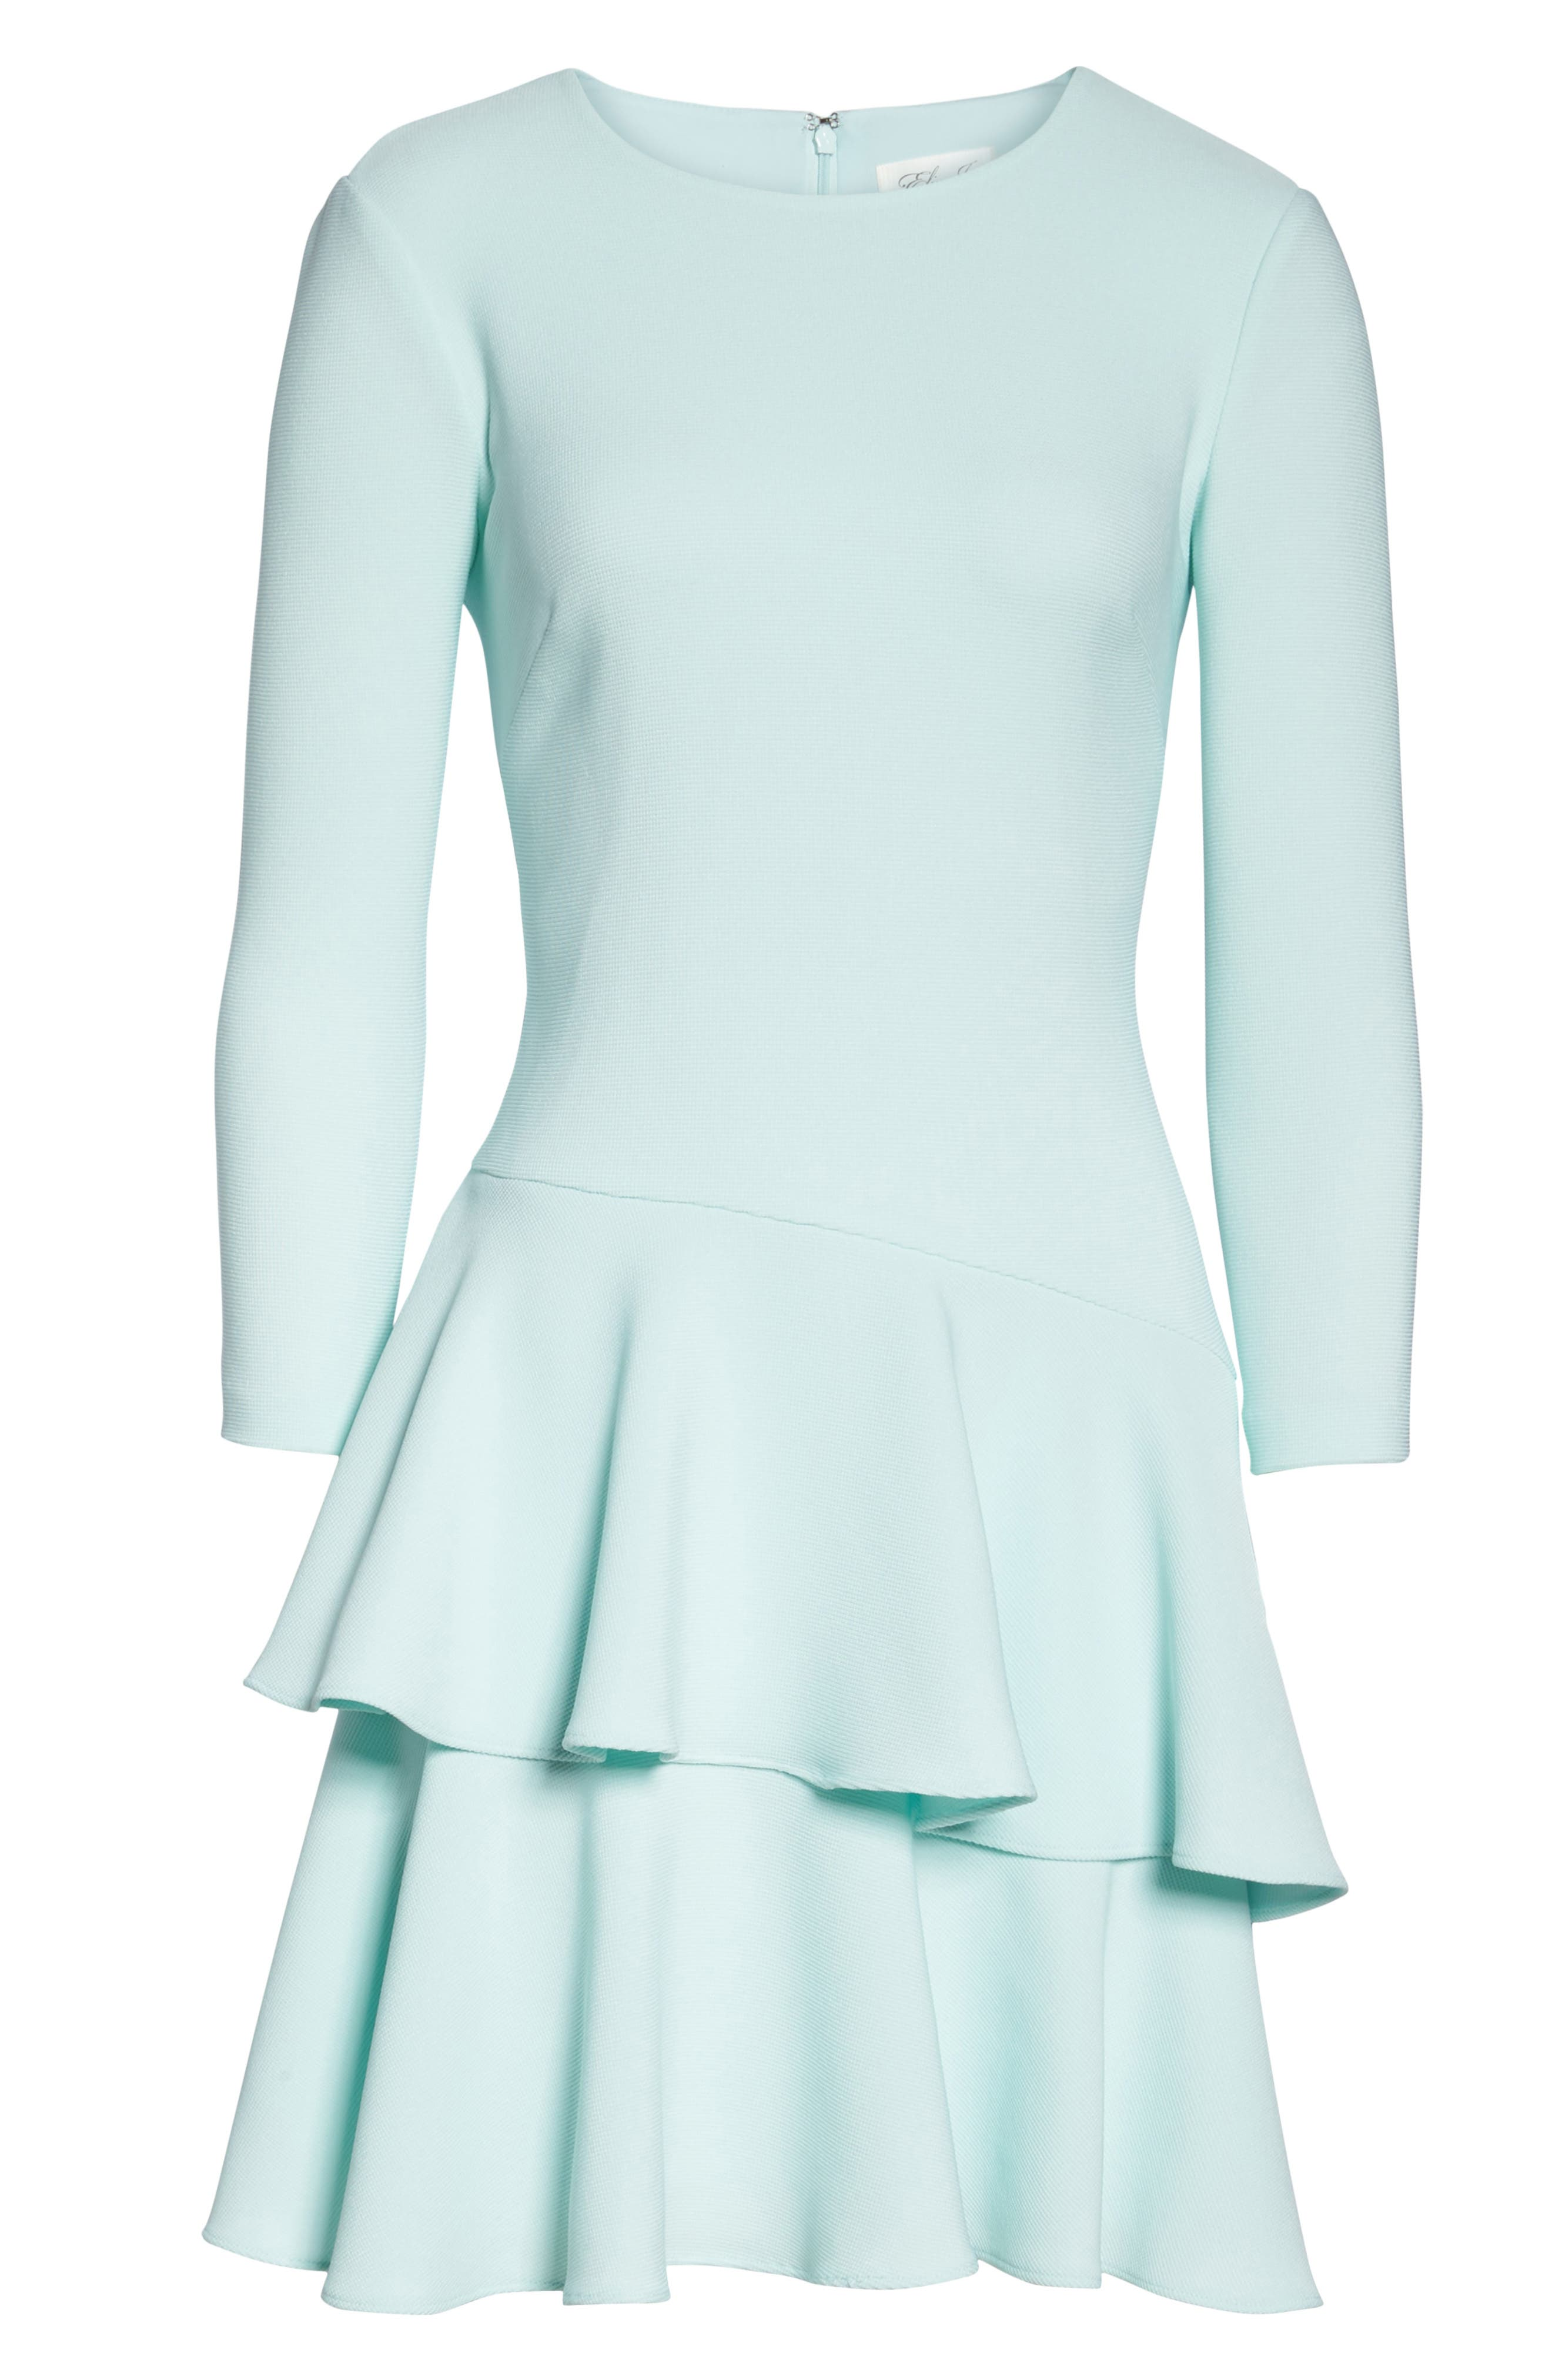 Tiered Ruffle Dress,                             Alternate thumbnail 6, color,                             Mint